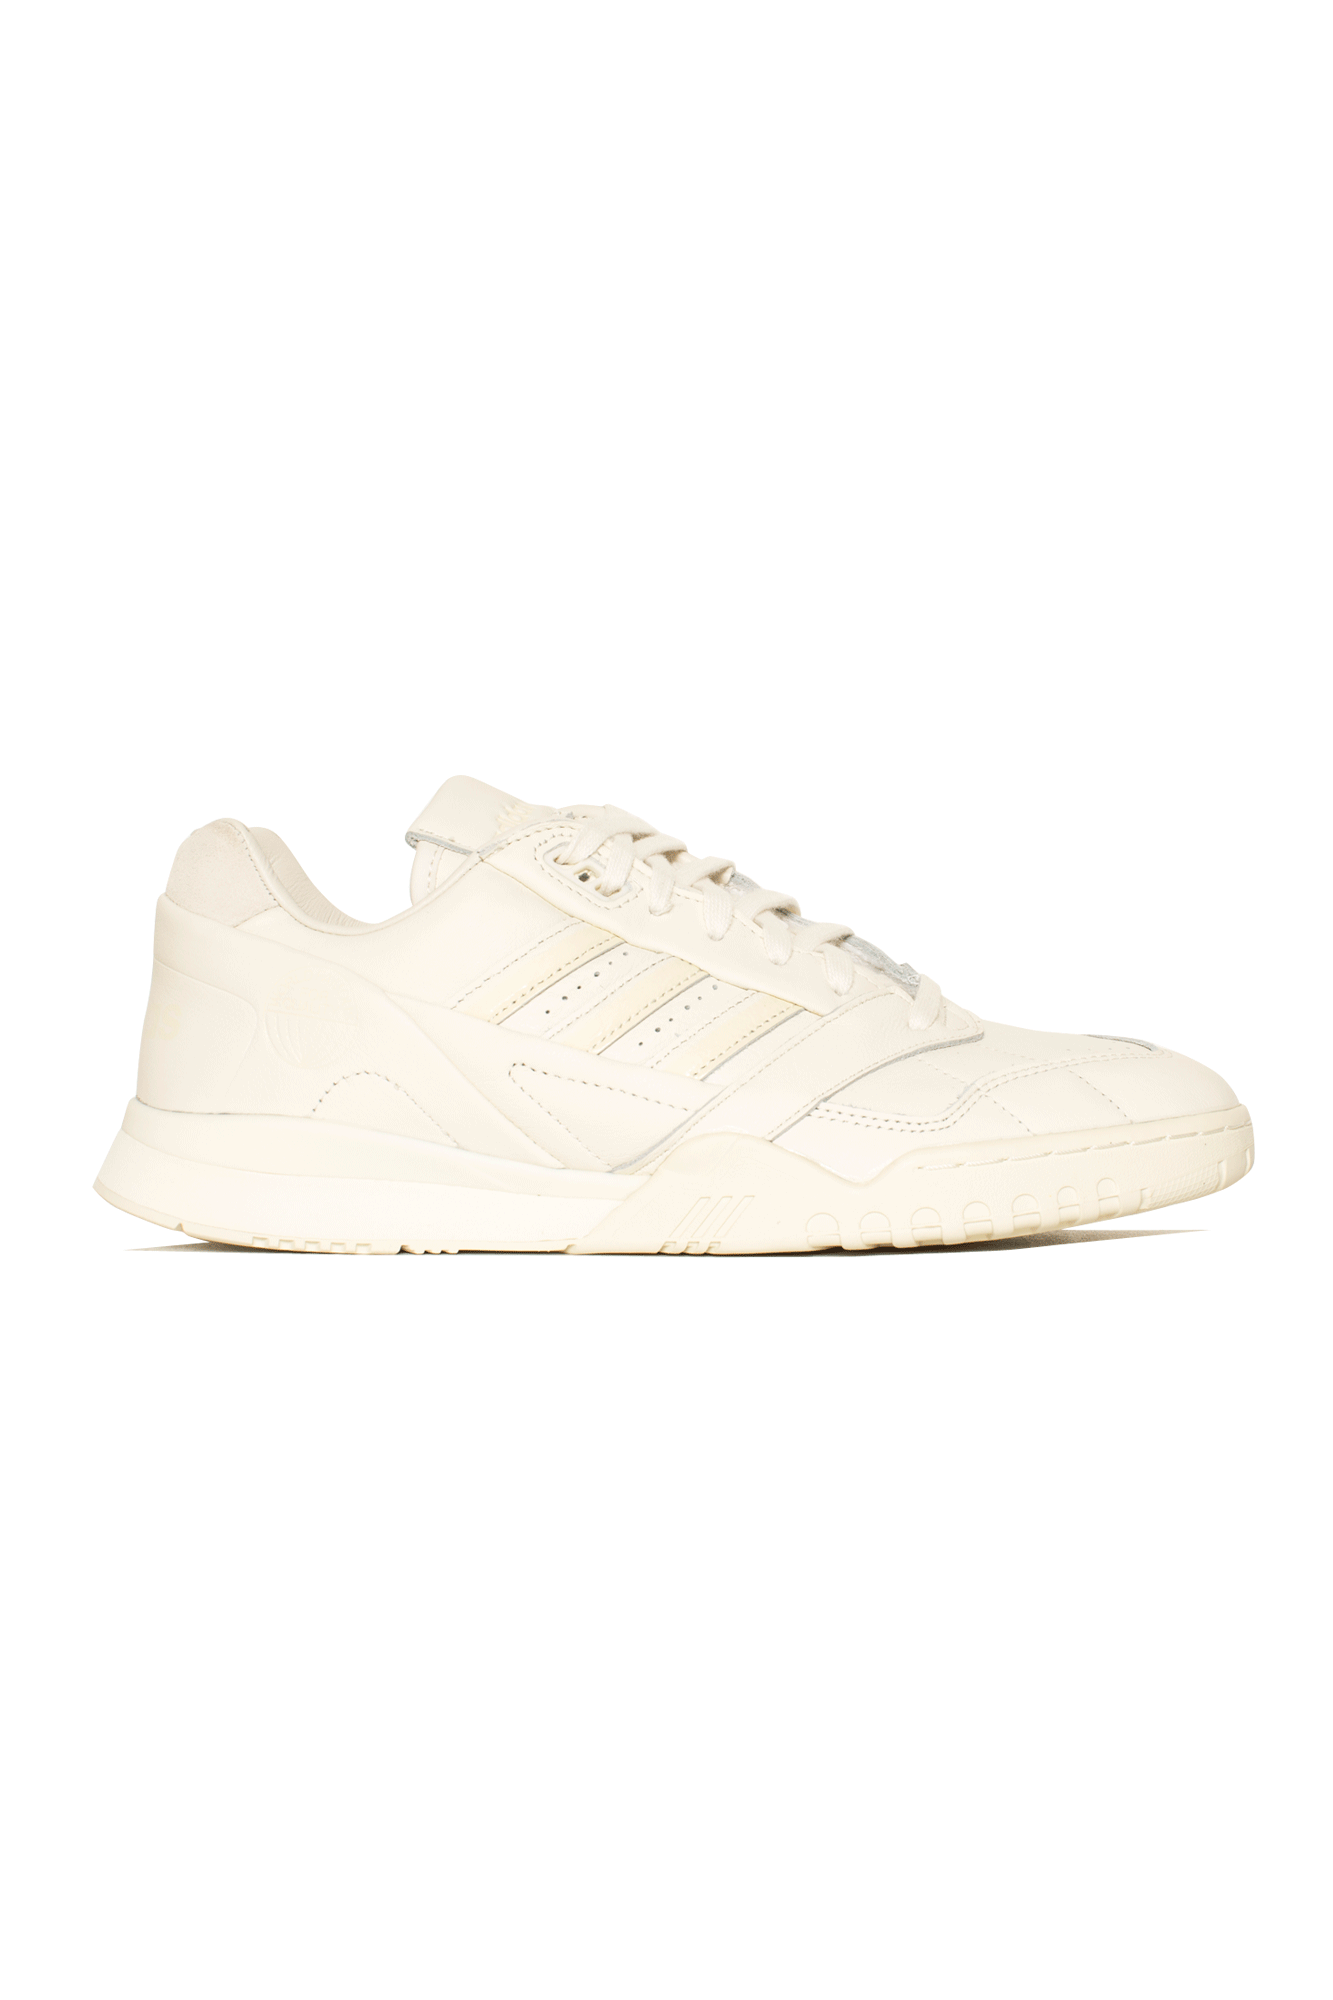 Adidas Originals Sneakers A.R. TRAINER White EG2646#000#WHITE#4,5 - One Block Down